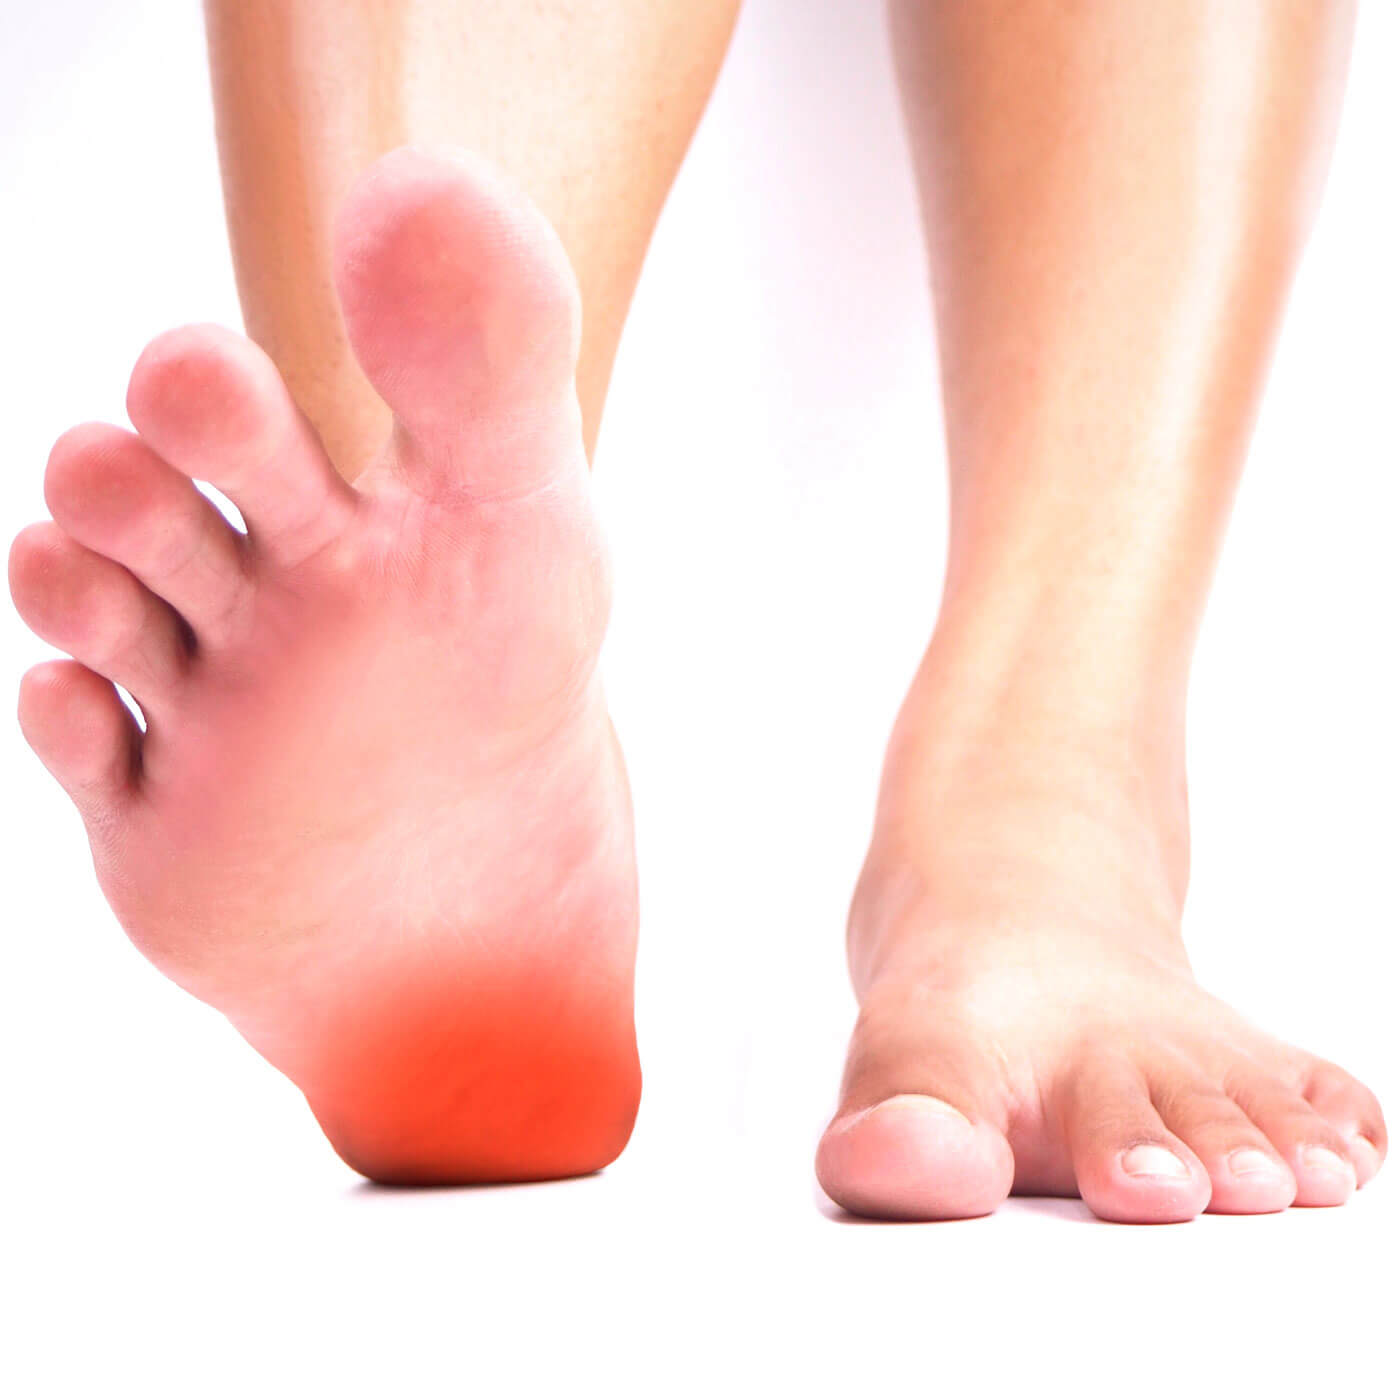 Essential Chiropractic and Healthcare Clinic - Podriatric Treatment for Heel Spurs